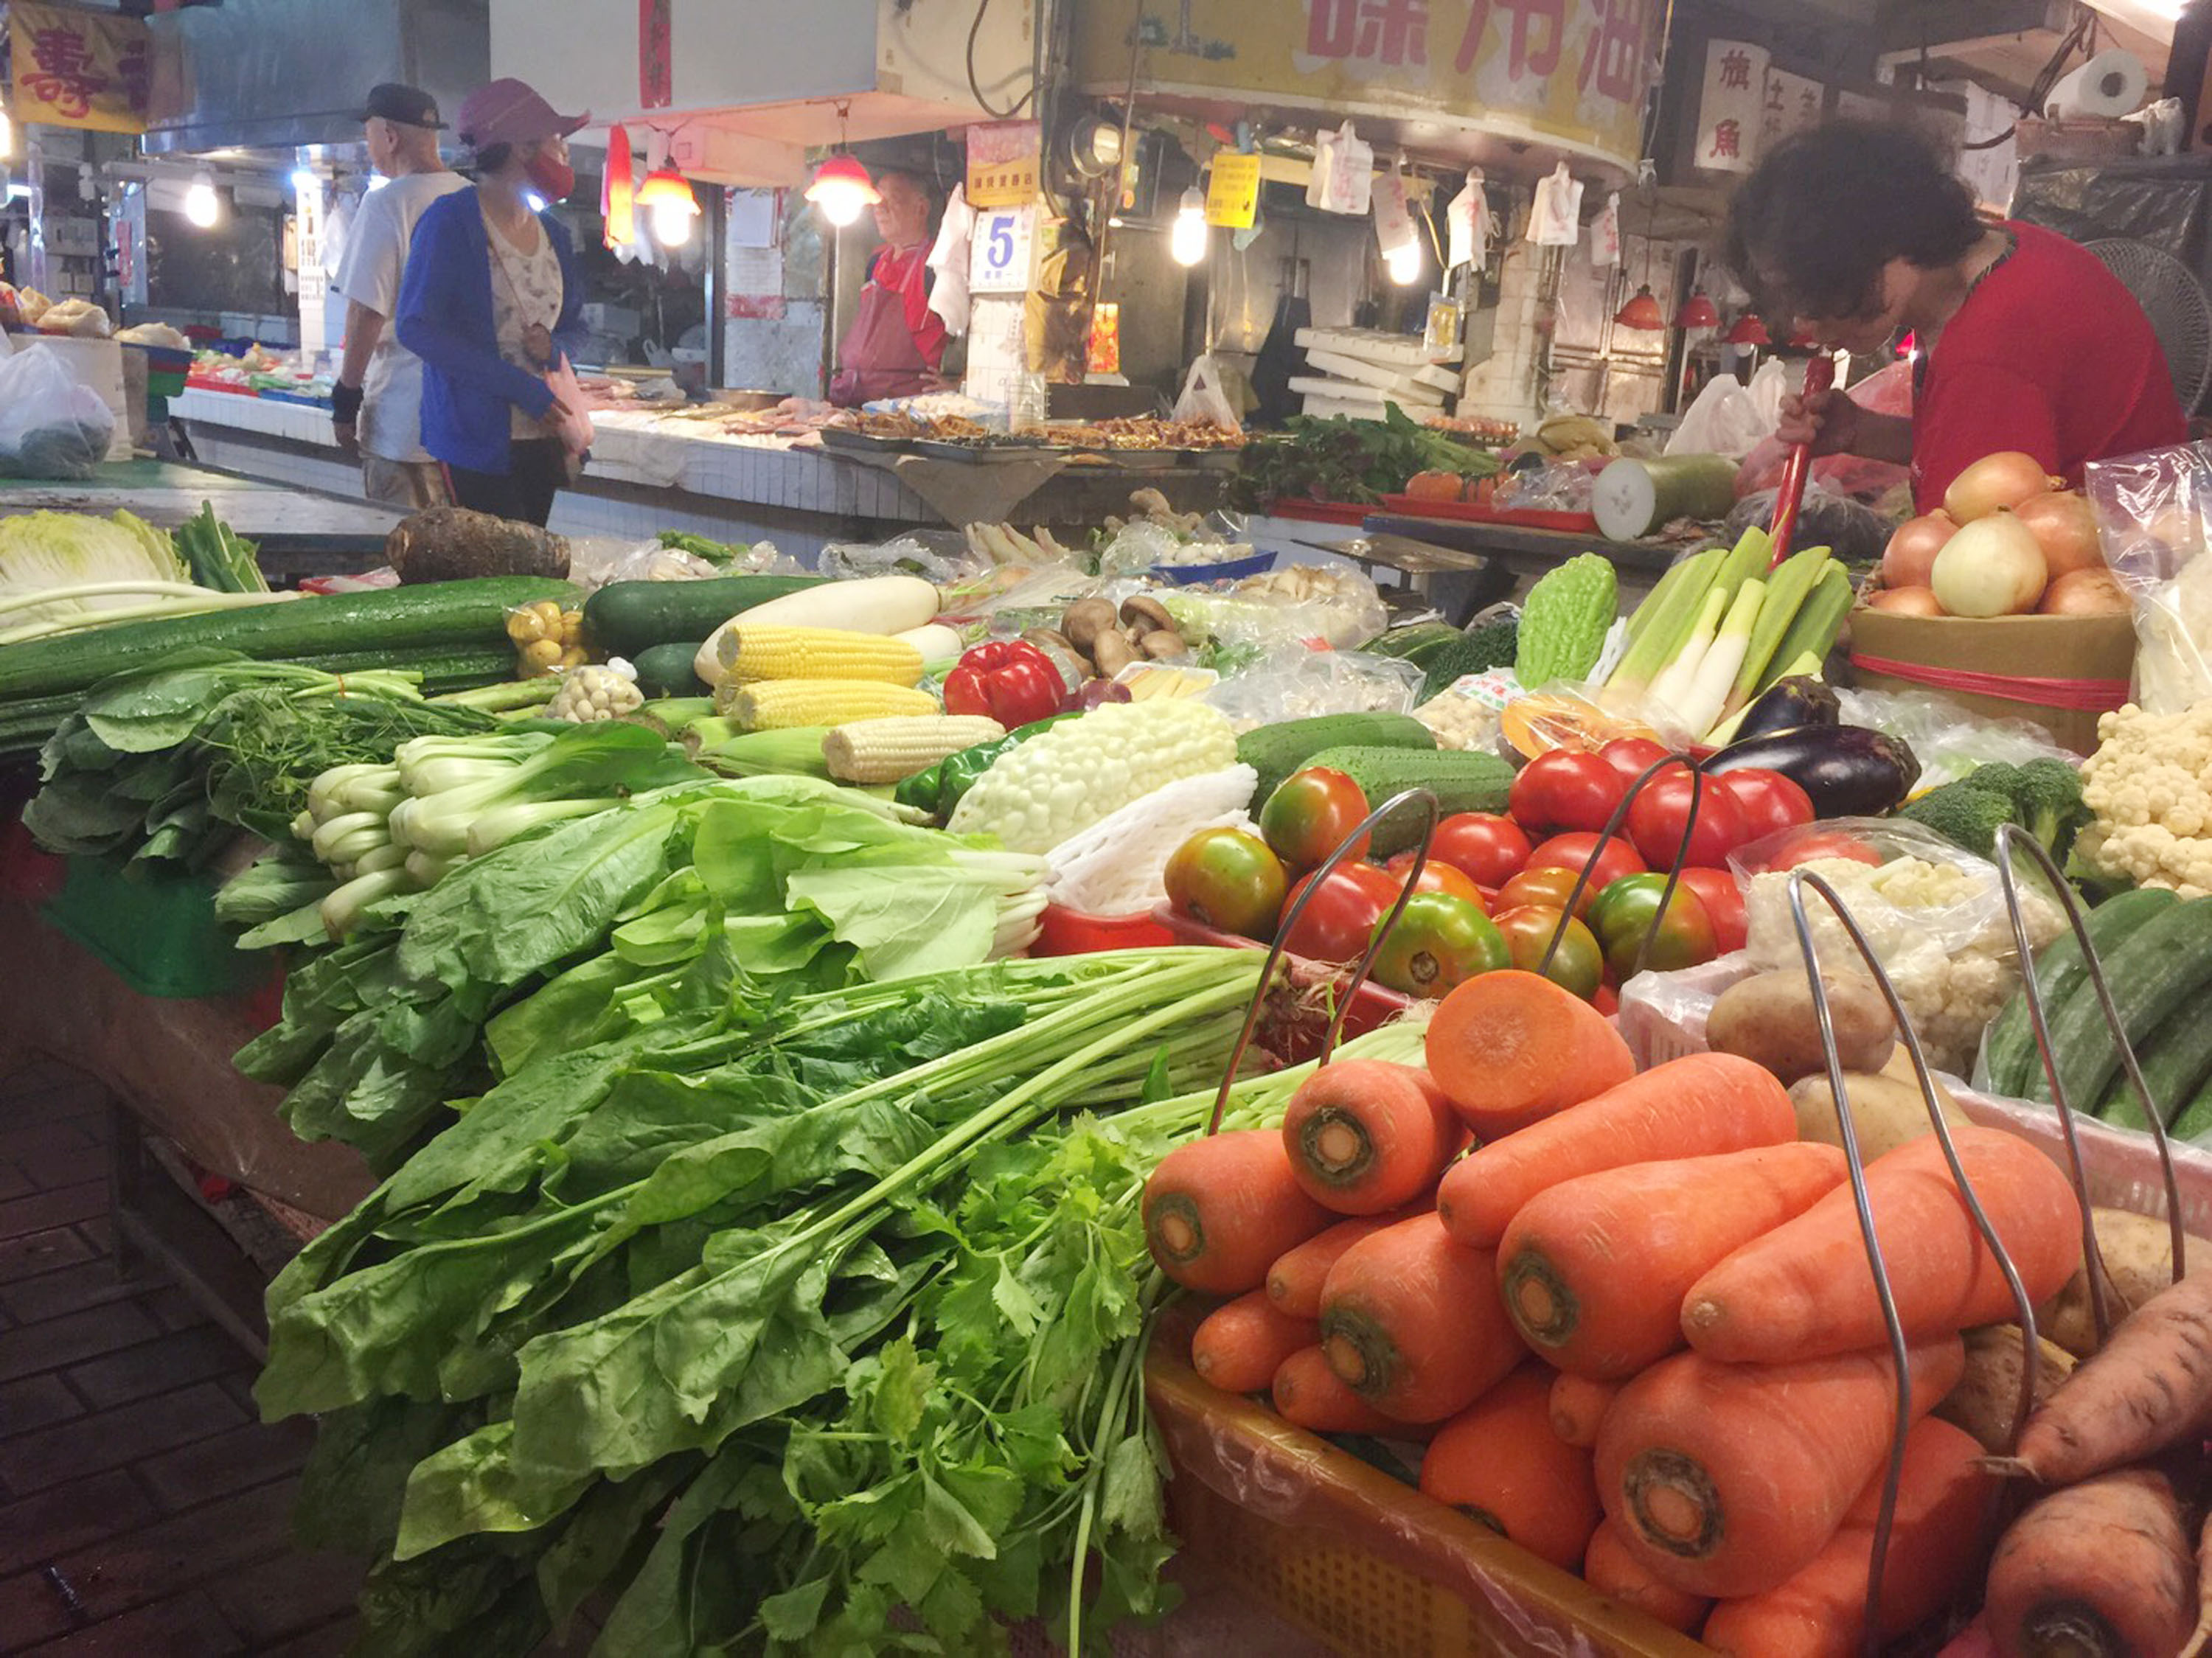 Straight days of heavy rain have caused severe damages to crops causing steep price hikes for leafy greens in traditional markets.